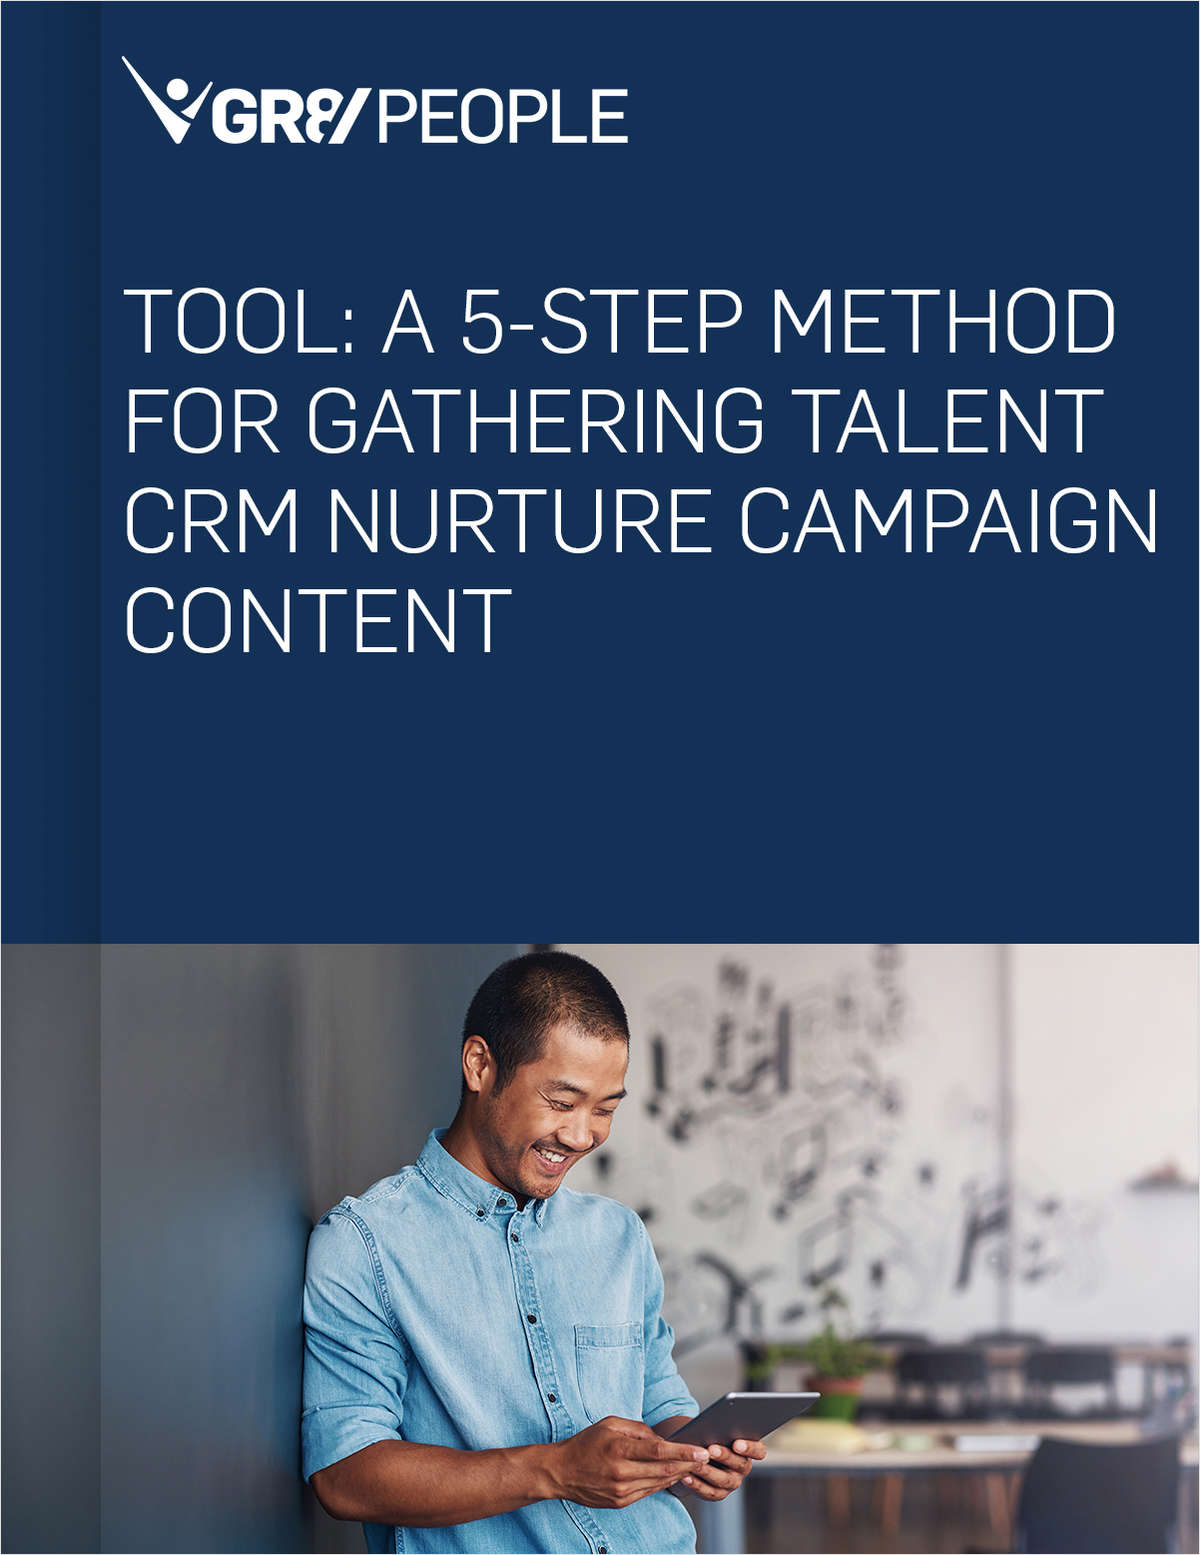 A 5-step Method for Gathering Talent CRM Nurture Campaign Content